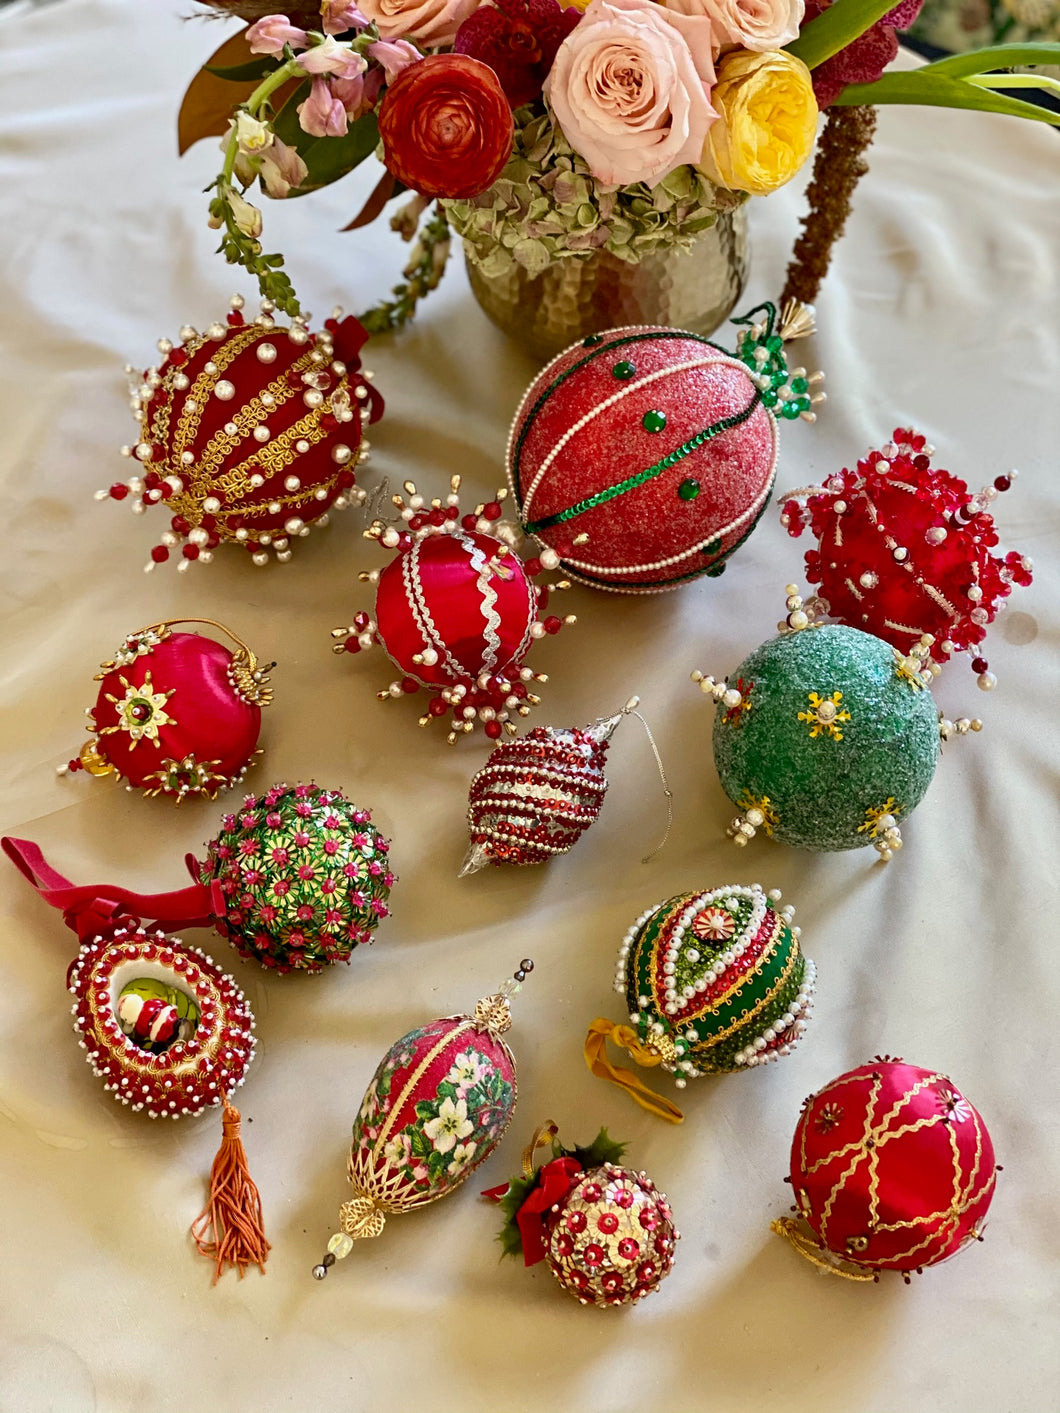 Collection of Vintage Push Pin Ornaments - Classically Christmas Red and Green